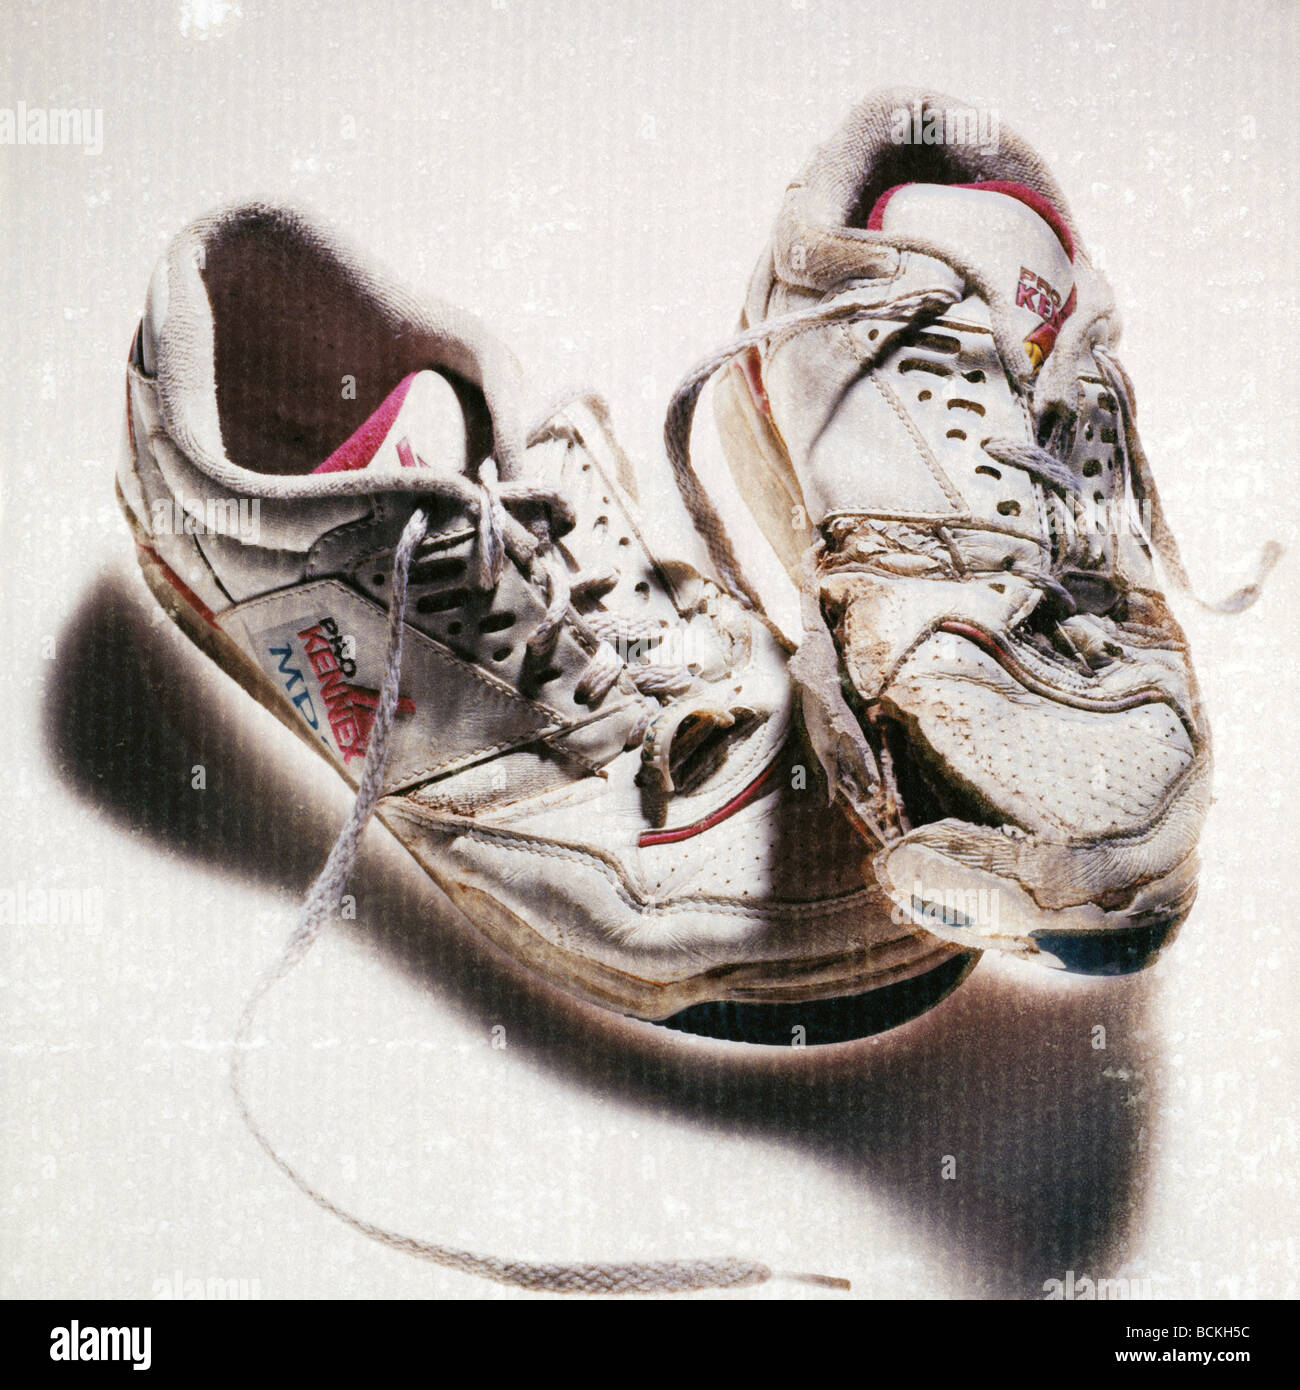 Photosamp; Tennis Images Old Stock Shoes Alamy Yb6fg7y